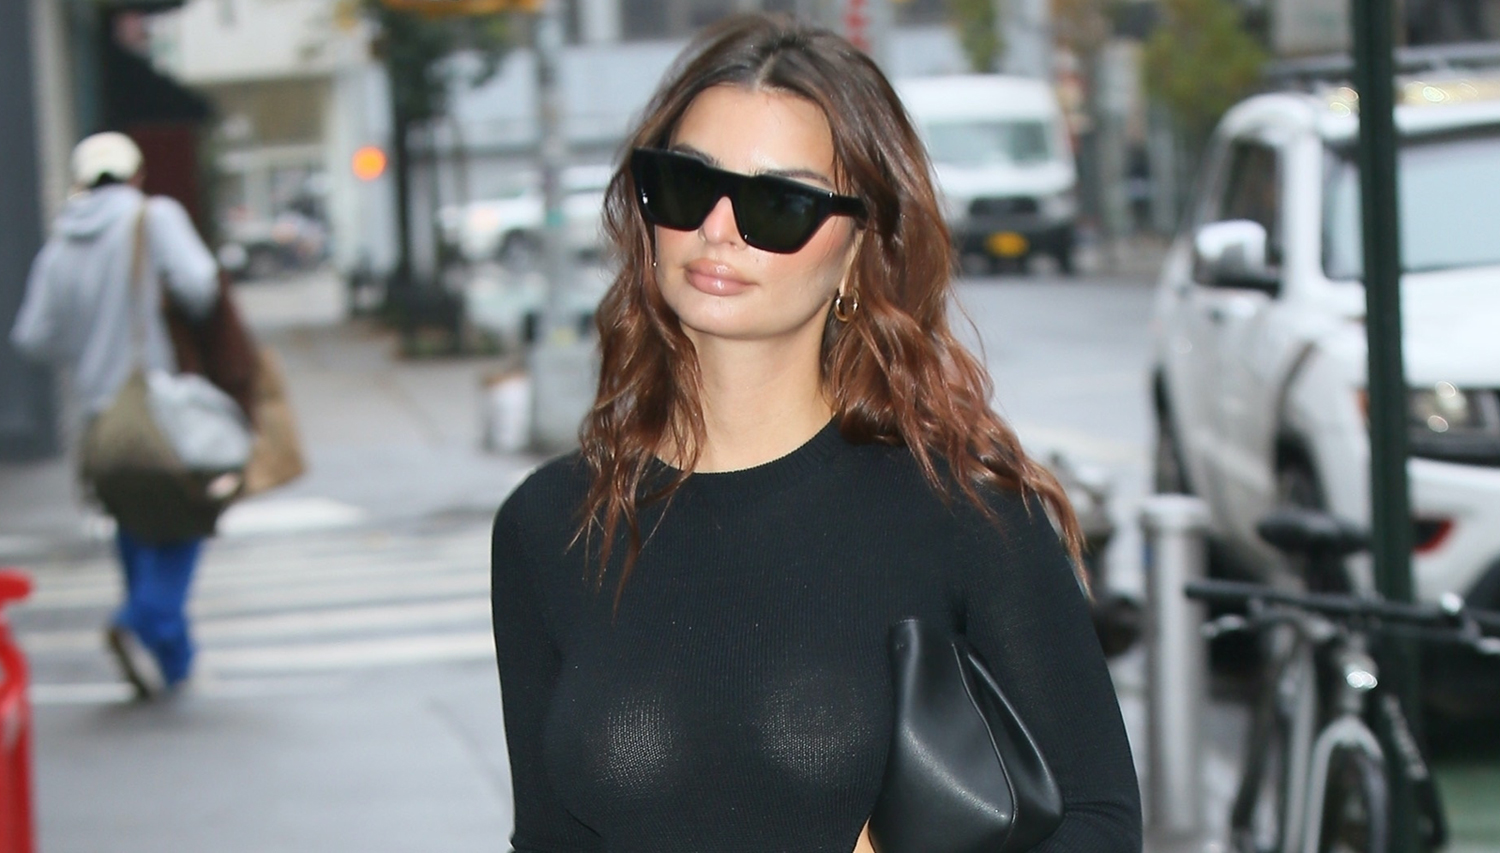 Emily Ratajkowski Is Pregnant And Showing Her Baby Bump In